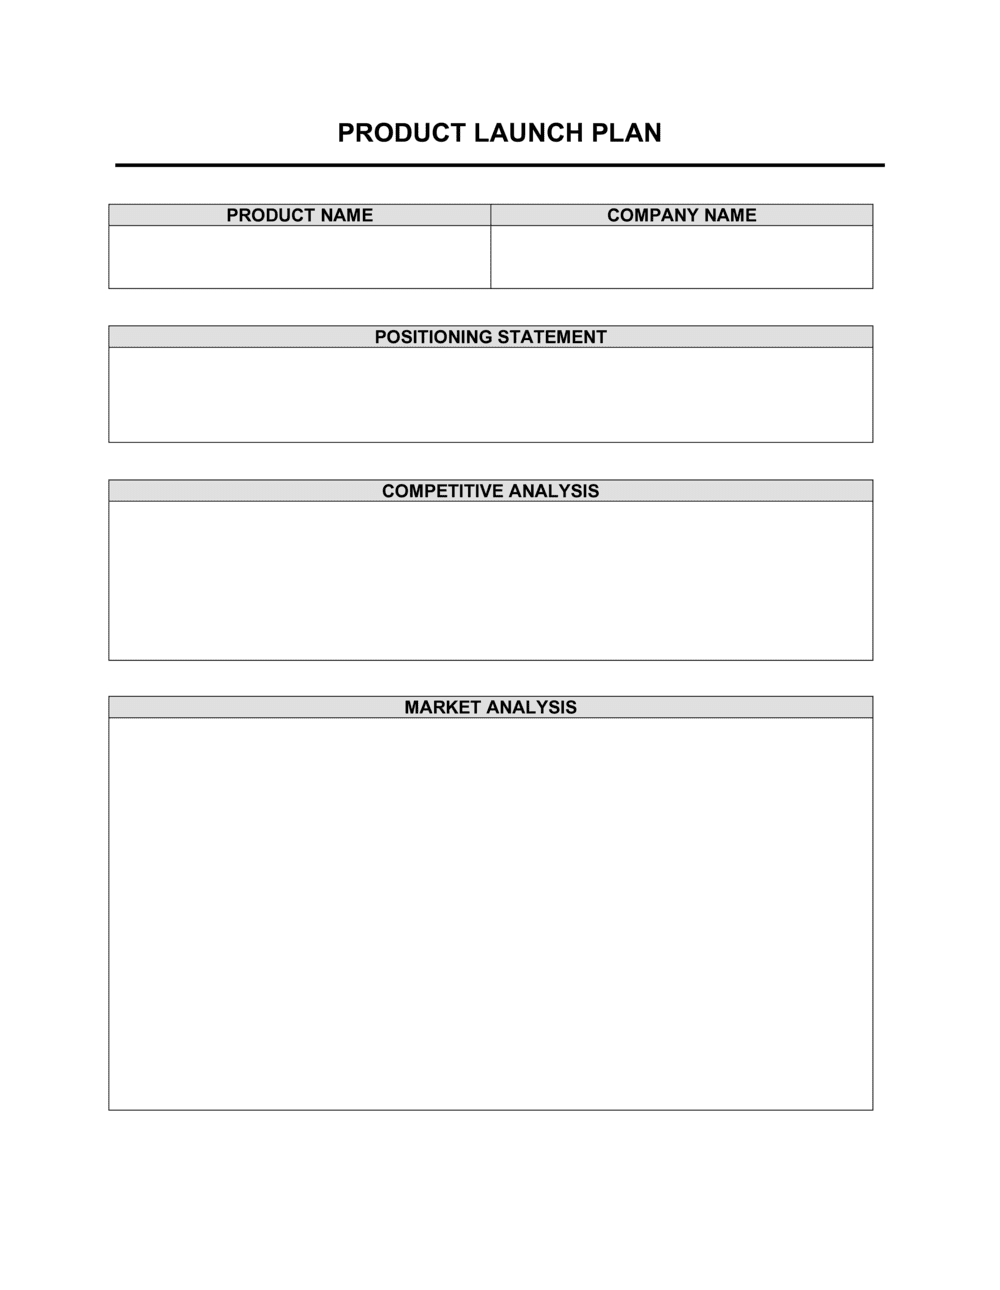 Business-in-a-Box's Product Launch Plan Template